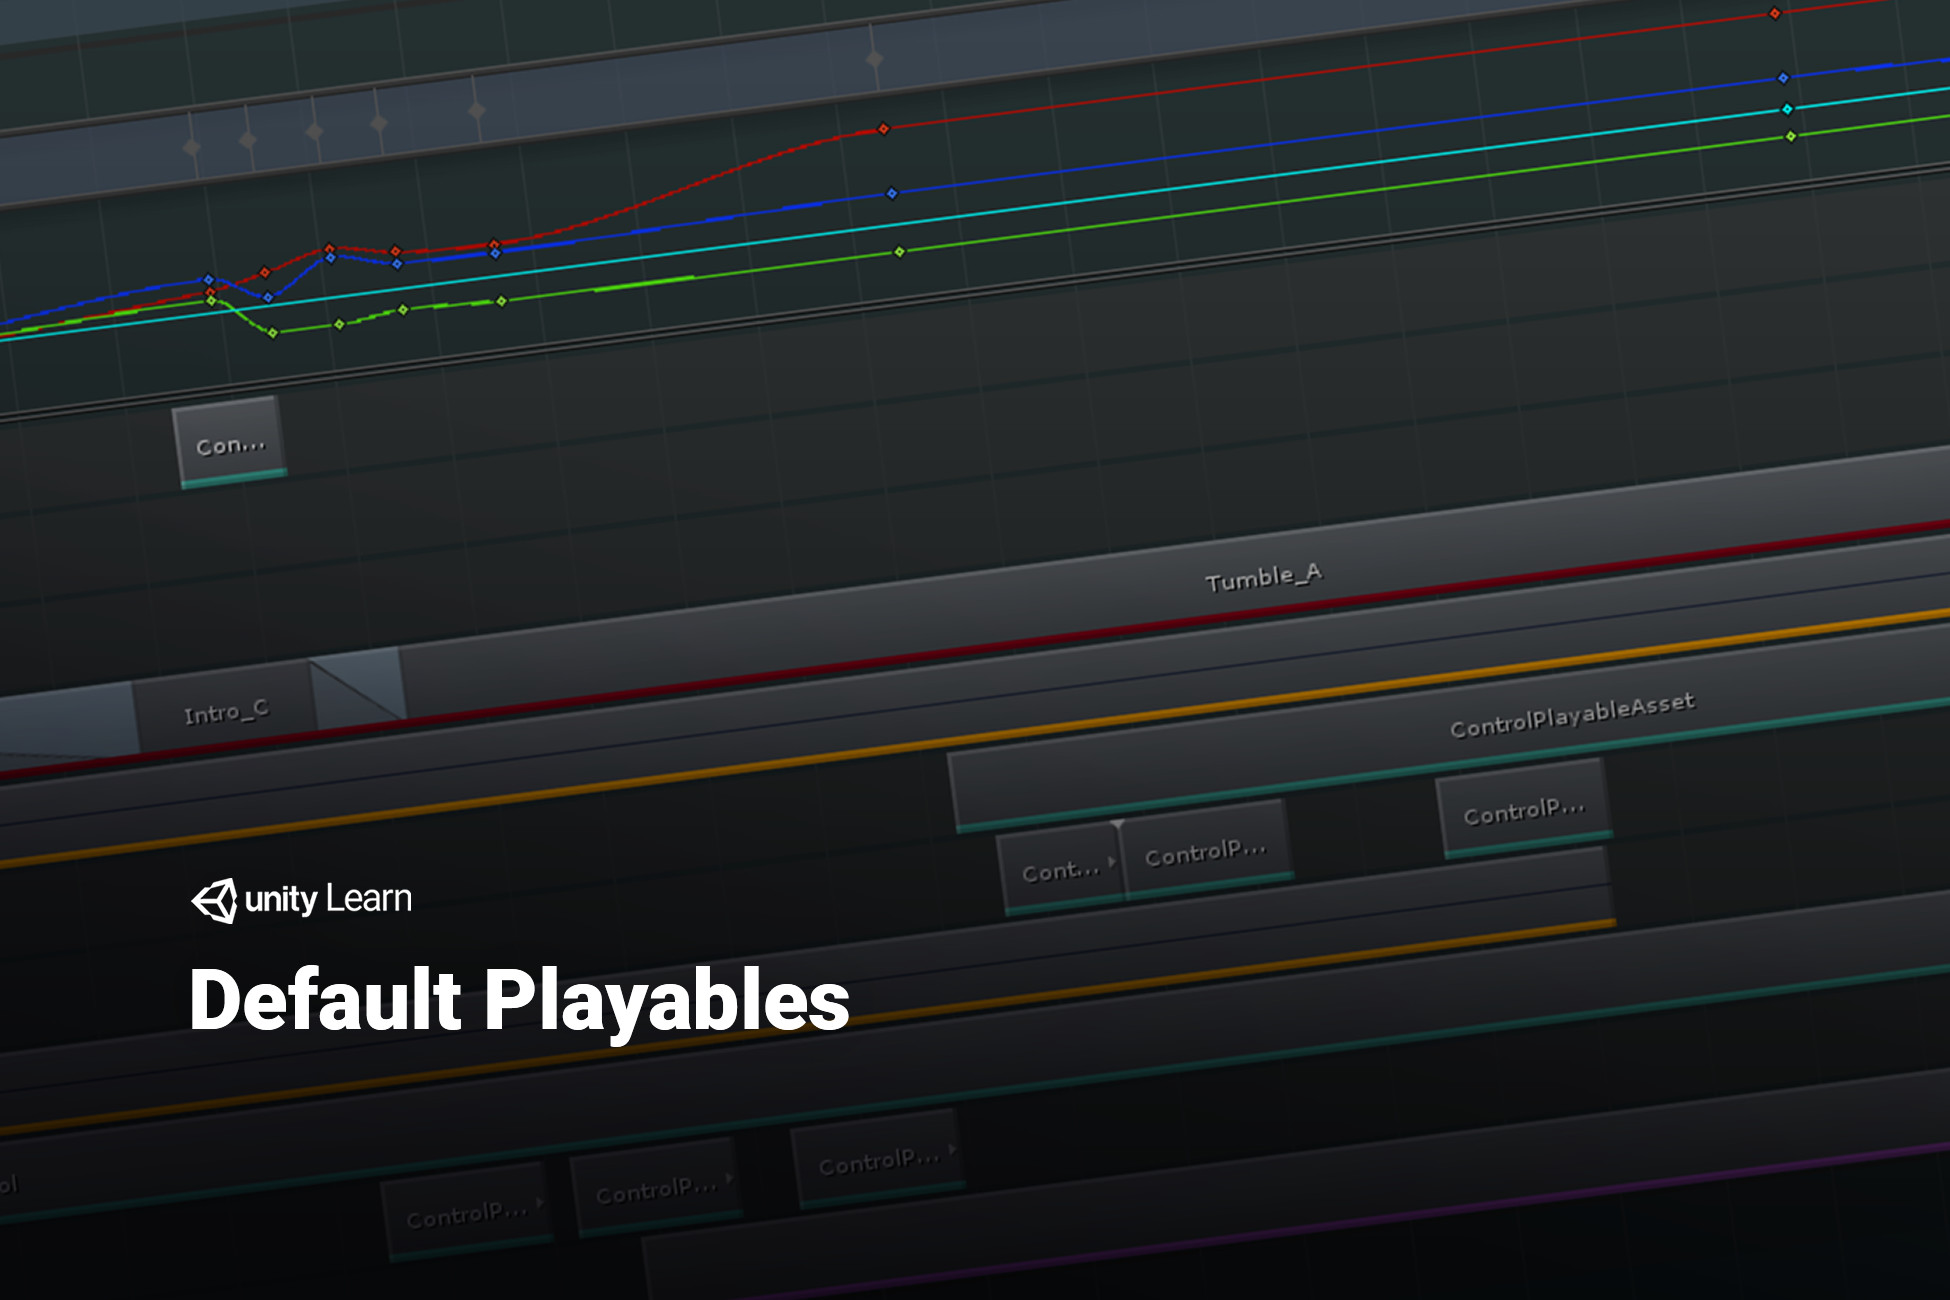 Default Playables